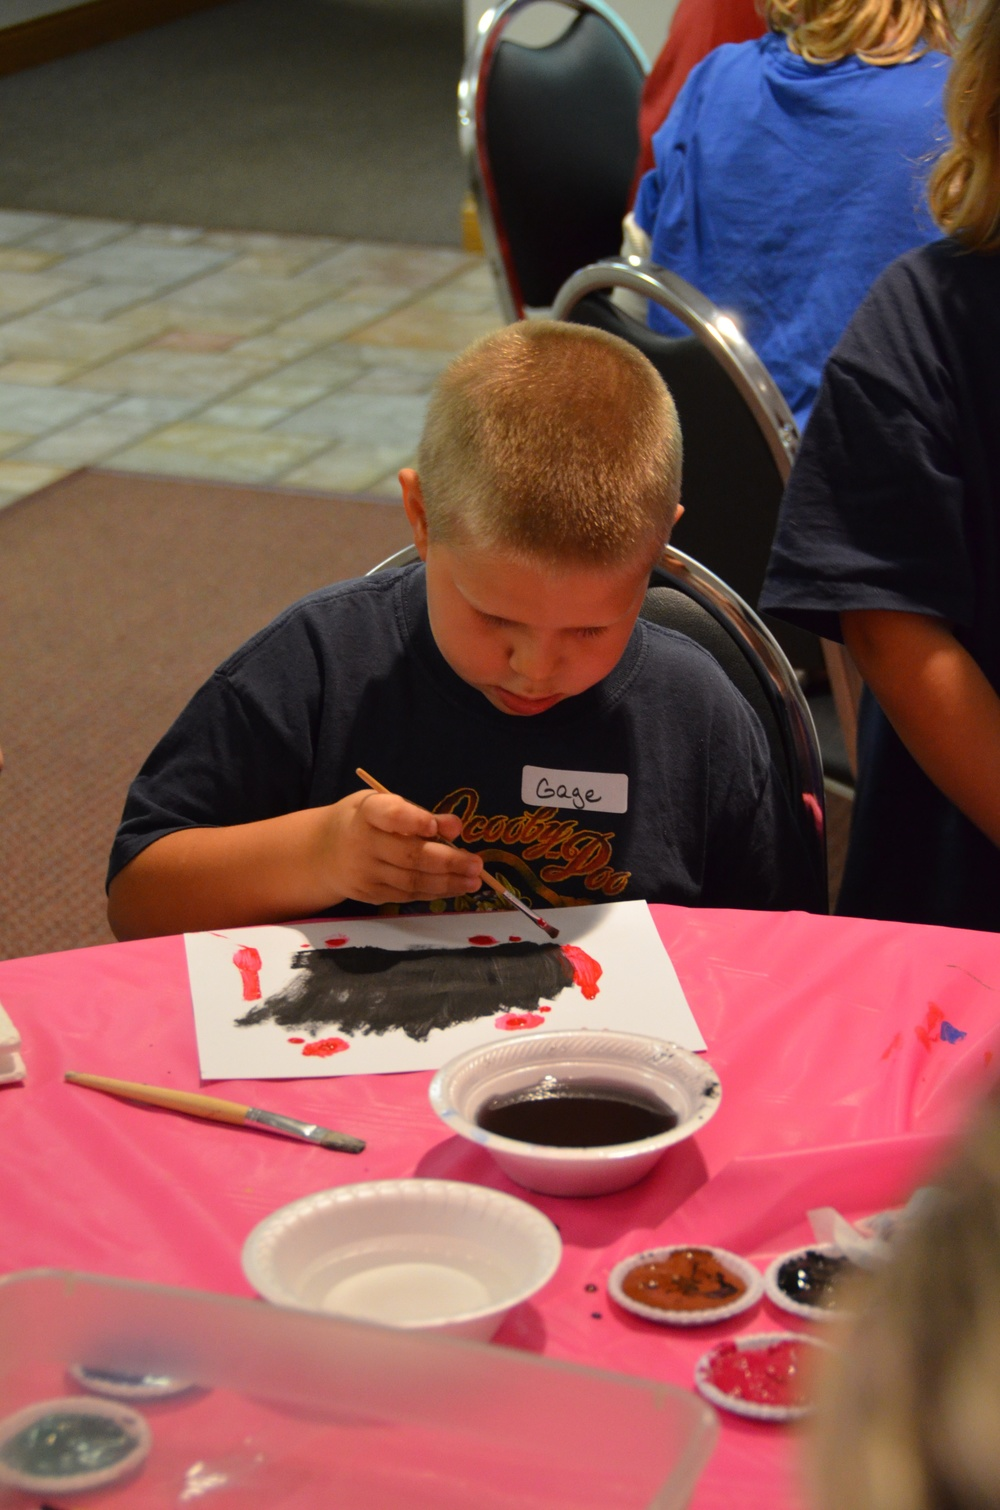 KIds ARt Church 9 12 2011   95308.jpg